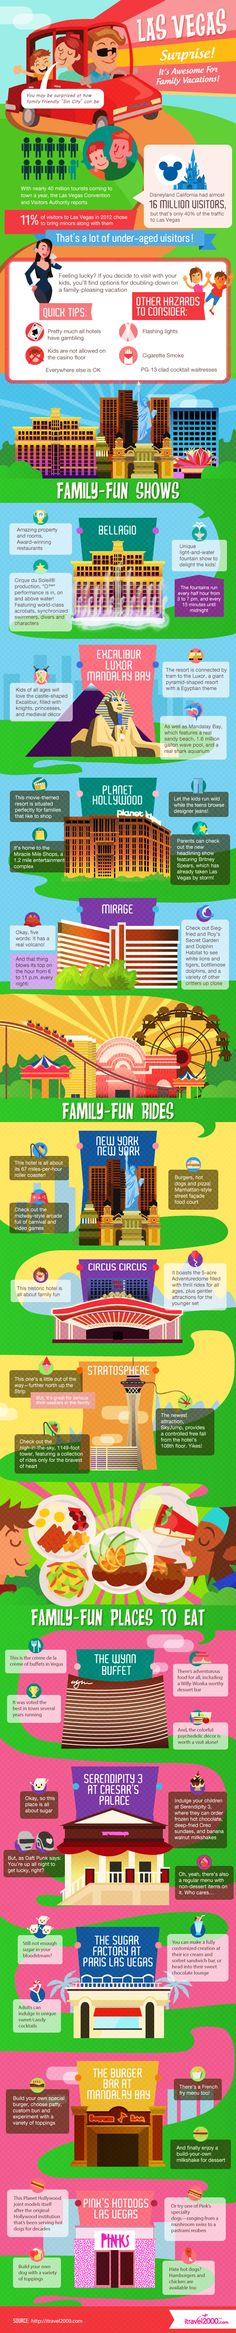 Family Vacation Guide to Las Vegas - Travel infographic. USA